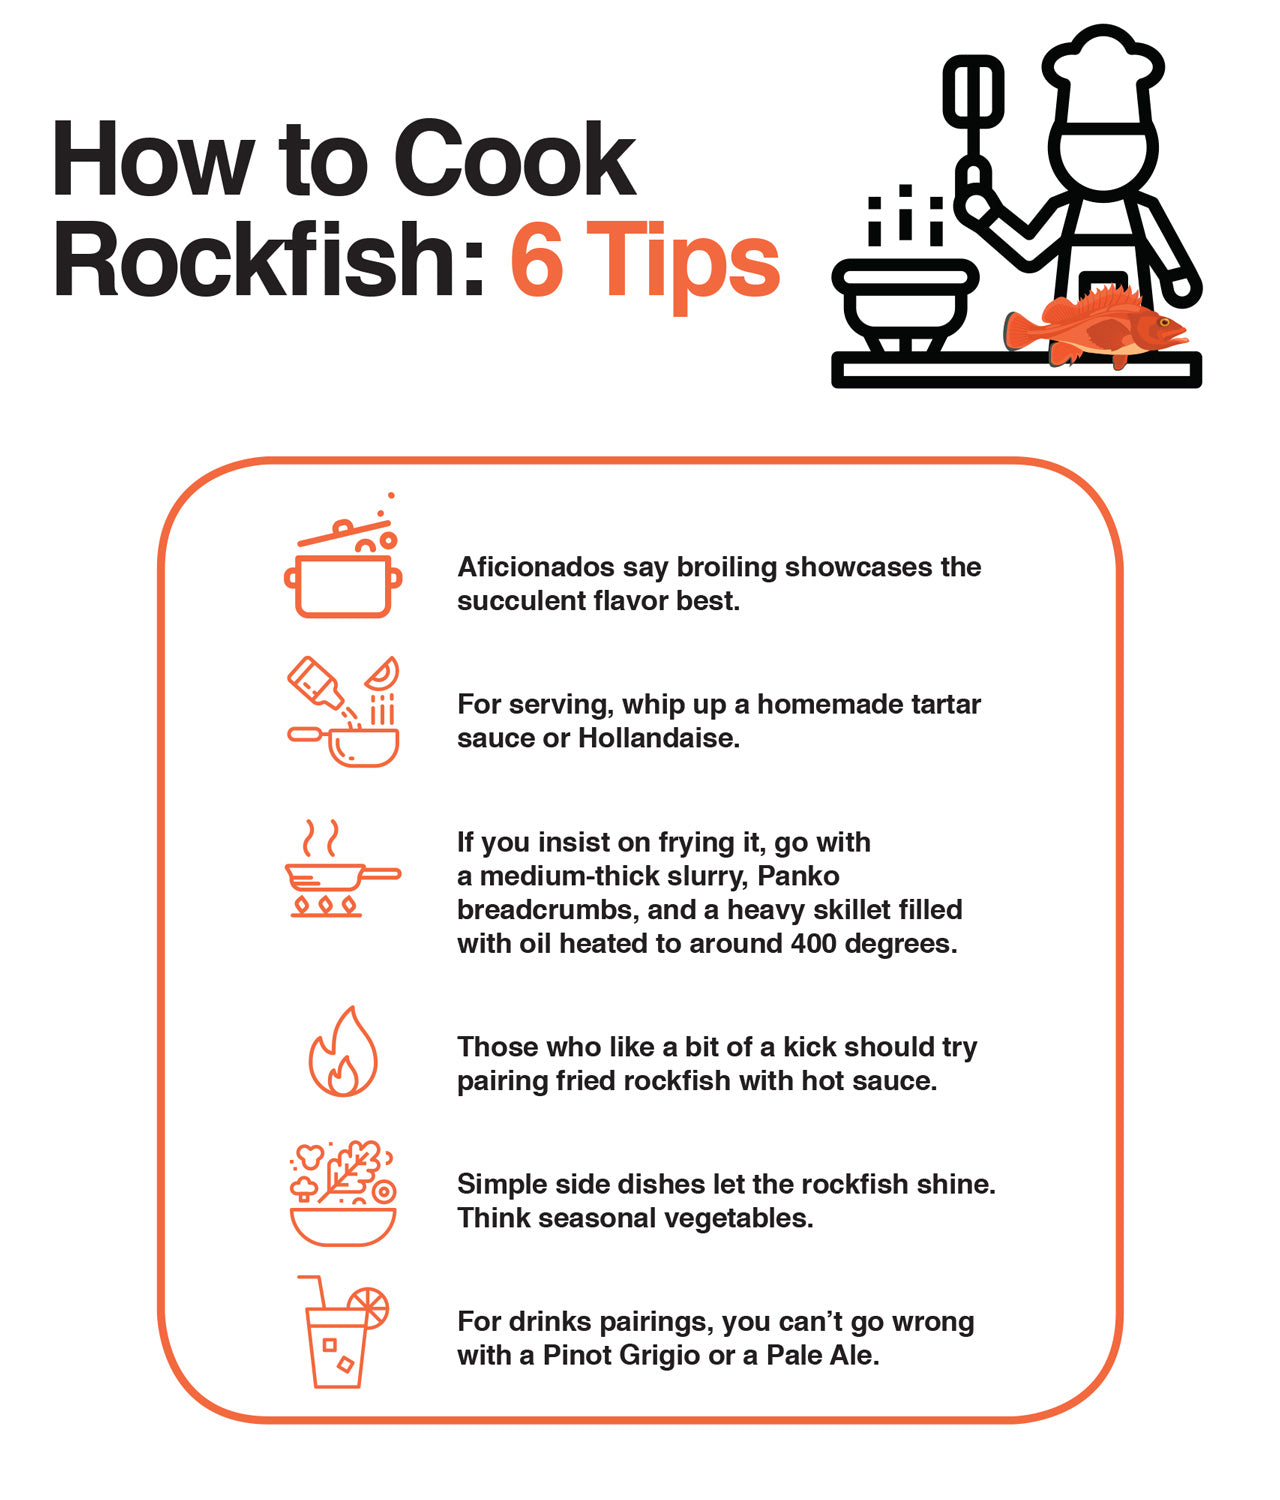 Here are six tips on how to cook rockfish.